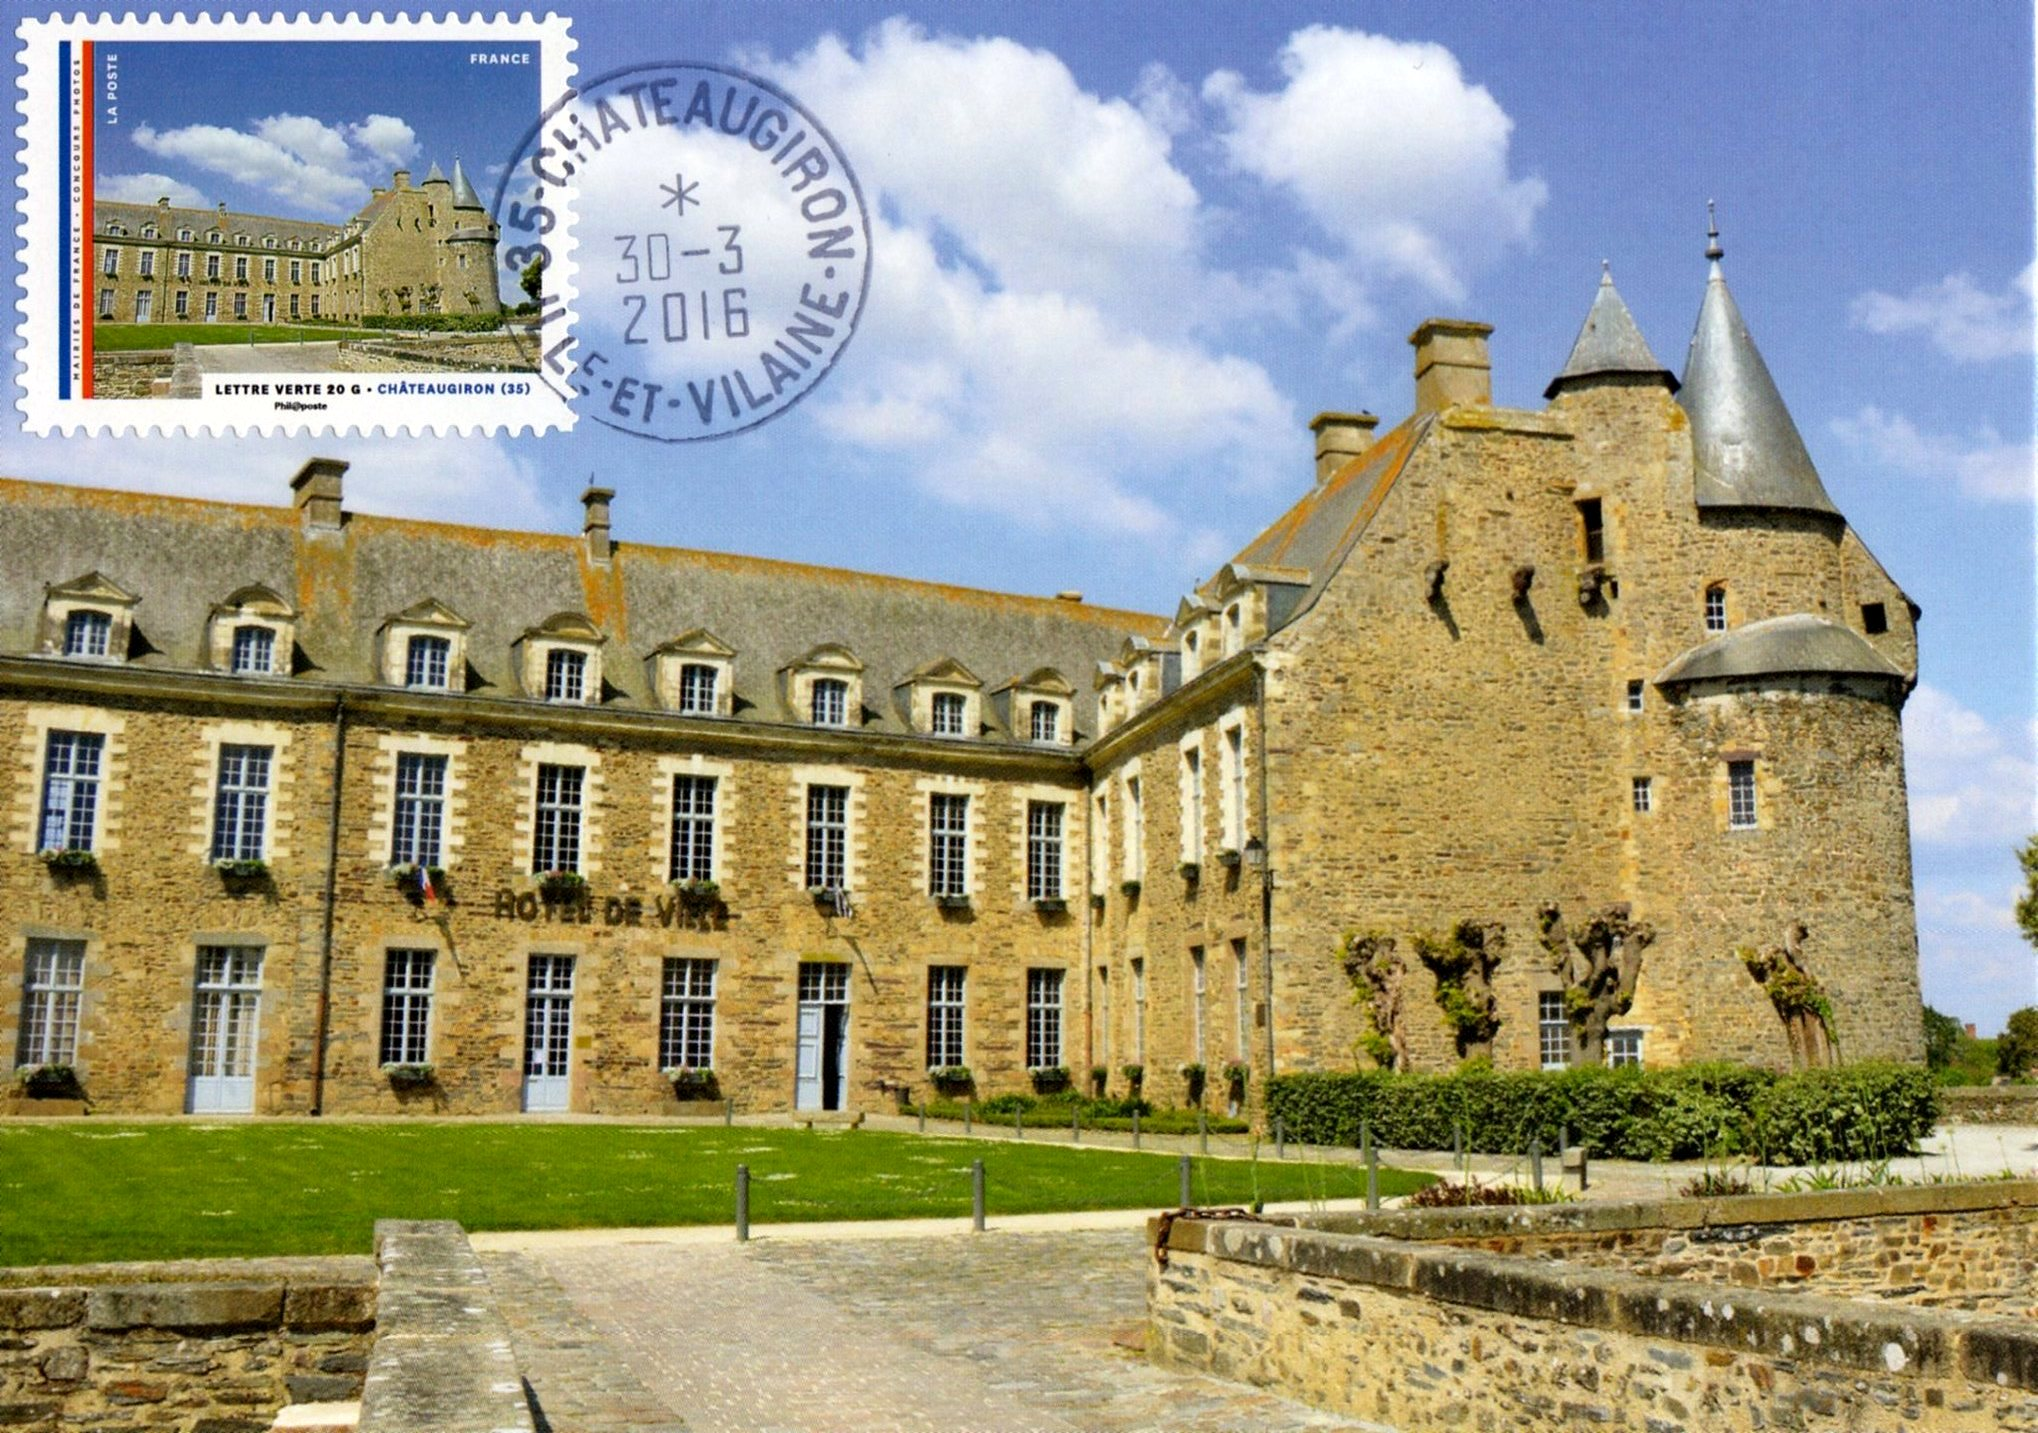 Châteaugiron Ed. Studio CPC Obl. Ord. 30.03.2016 Châteaugiron (...)